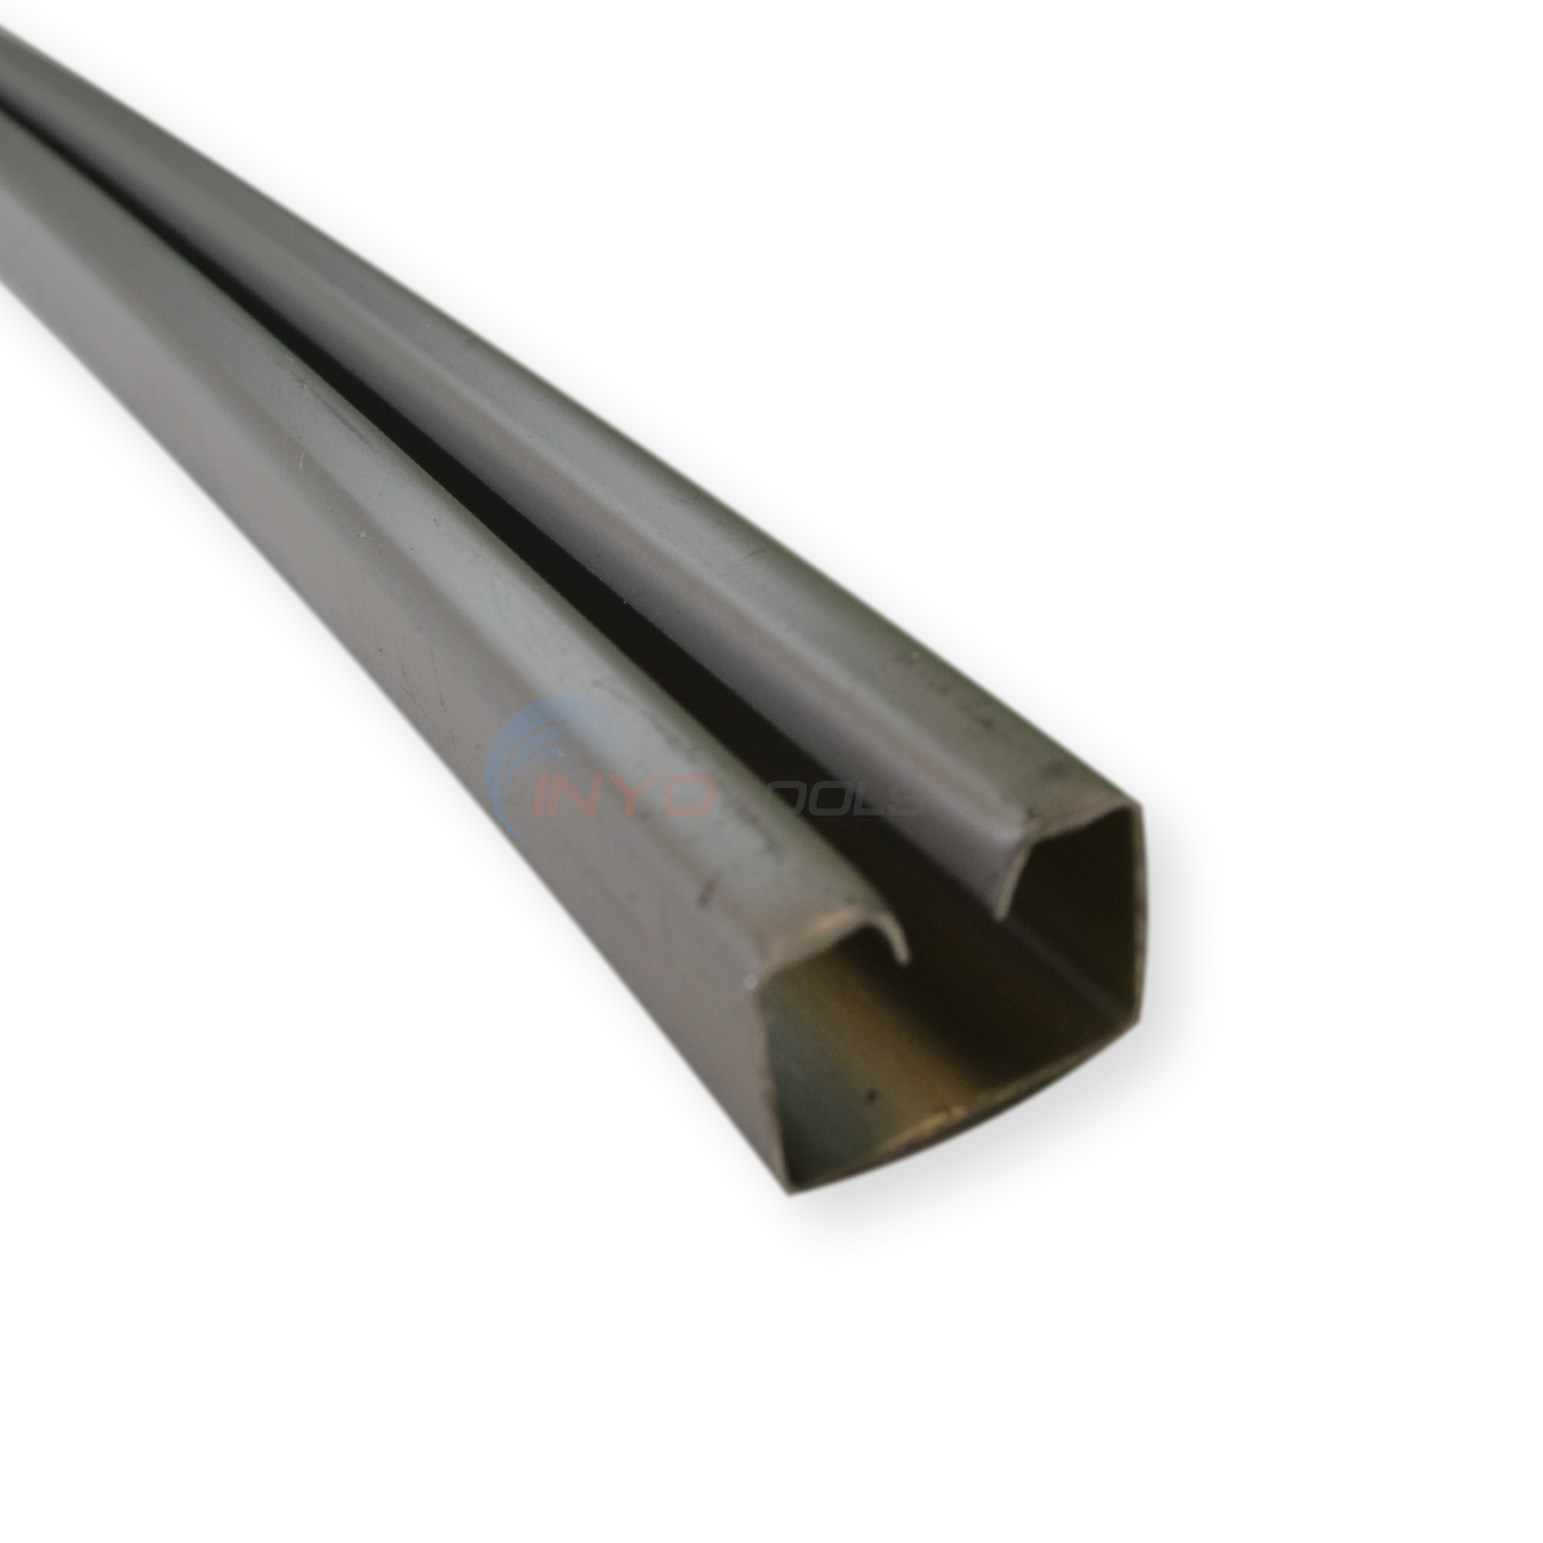 "Bottom Rail 48-1/4"" (Single)"